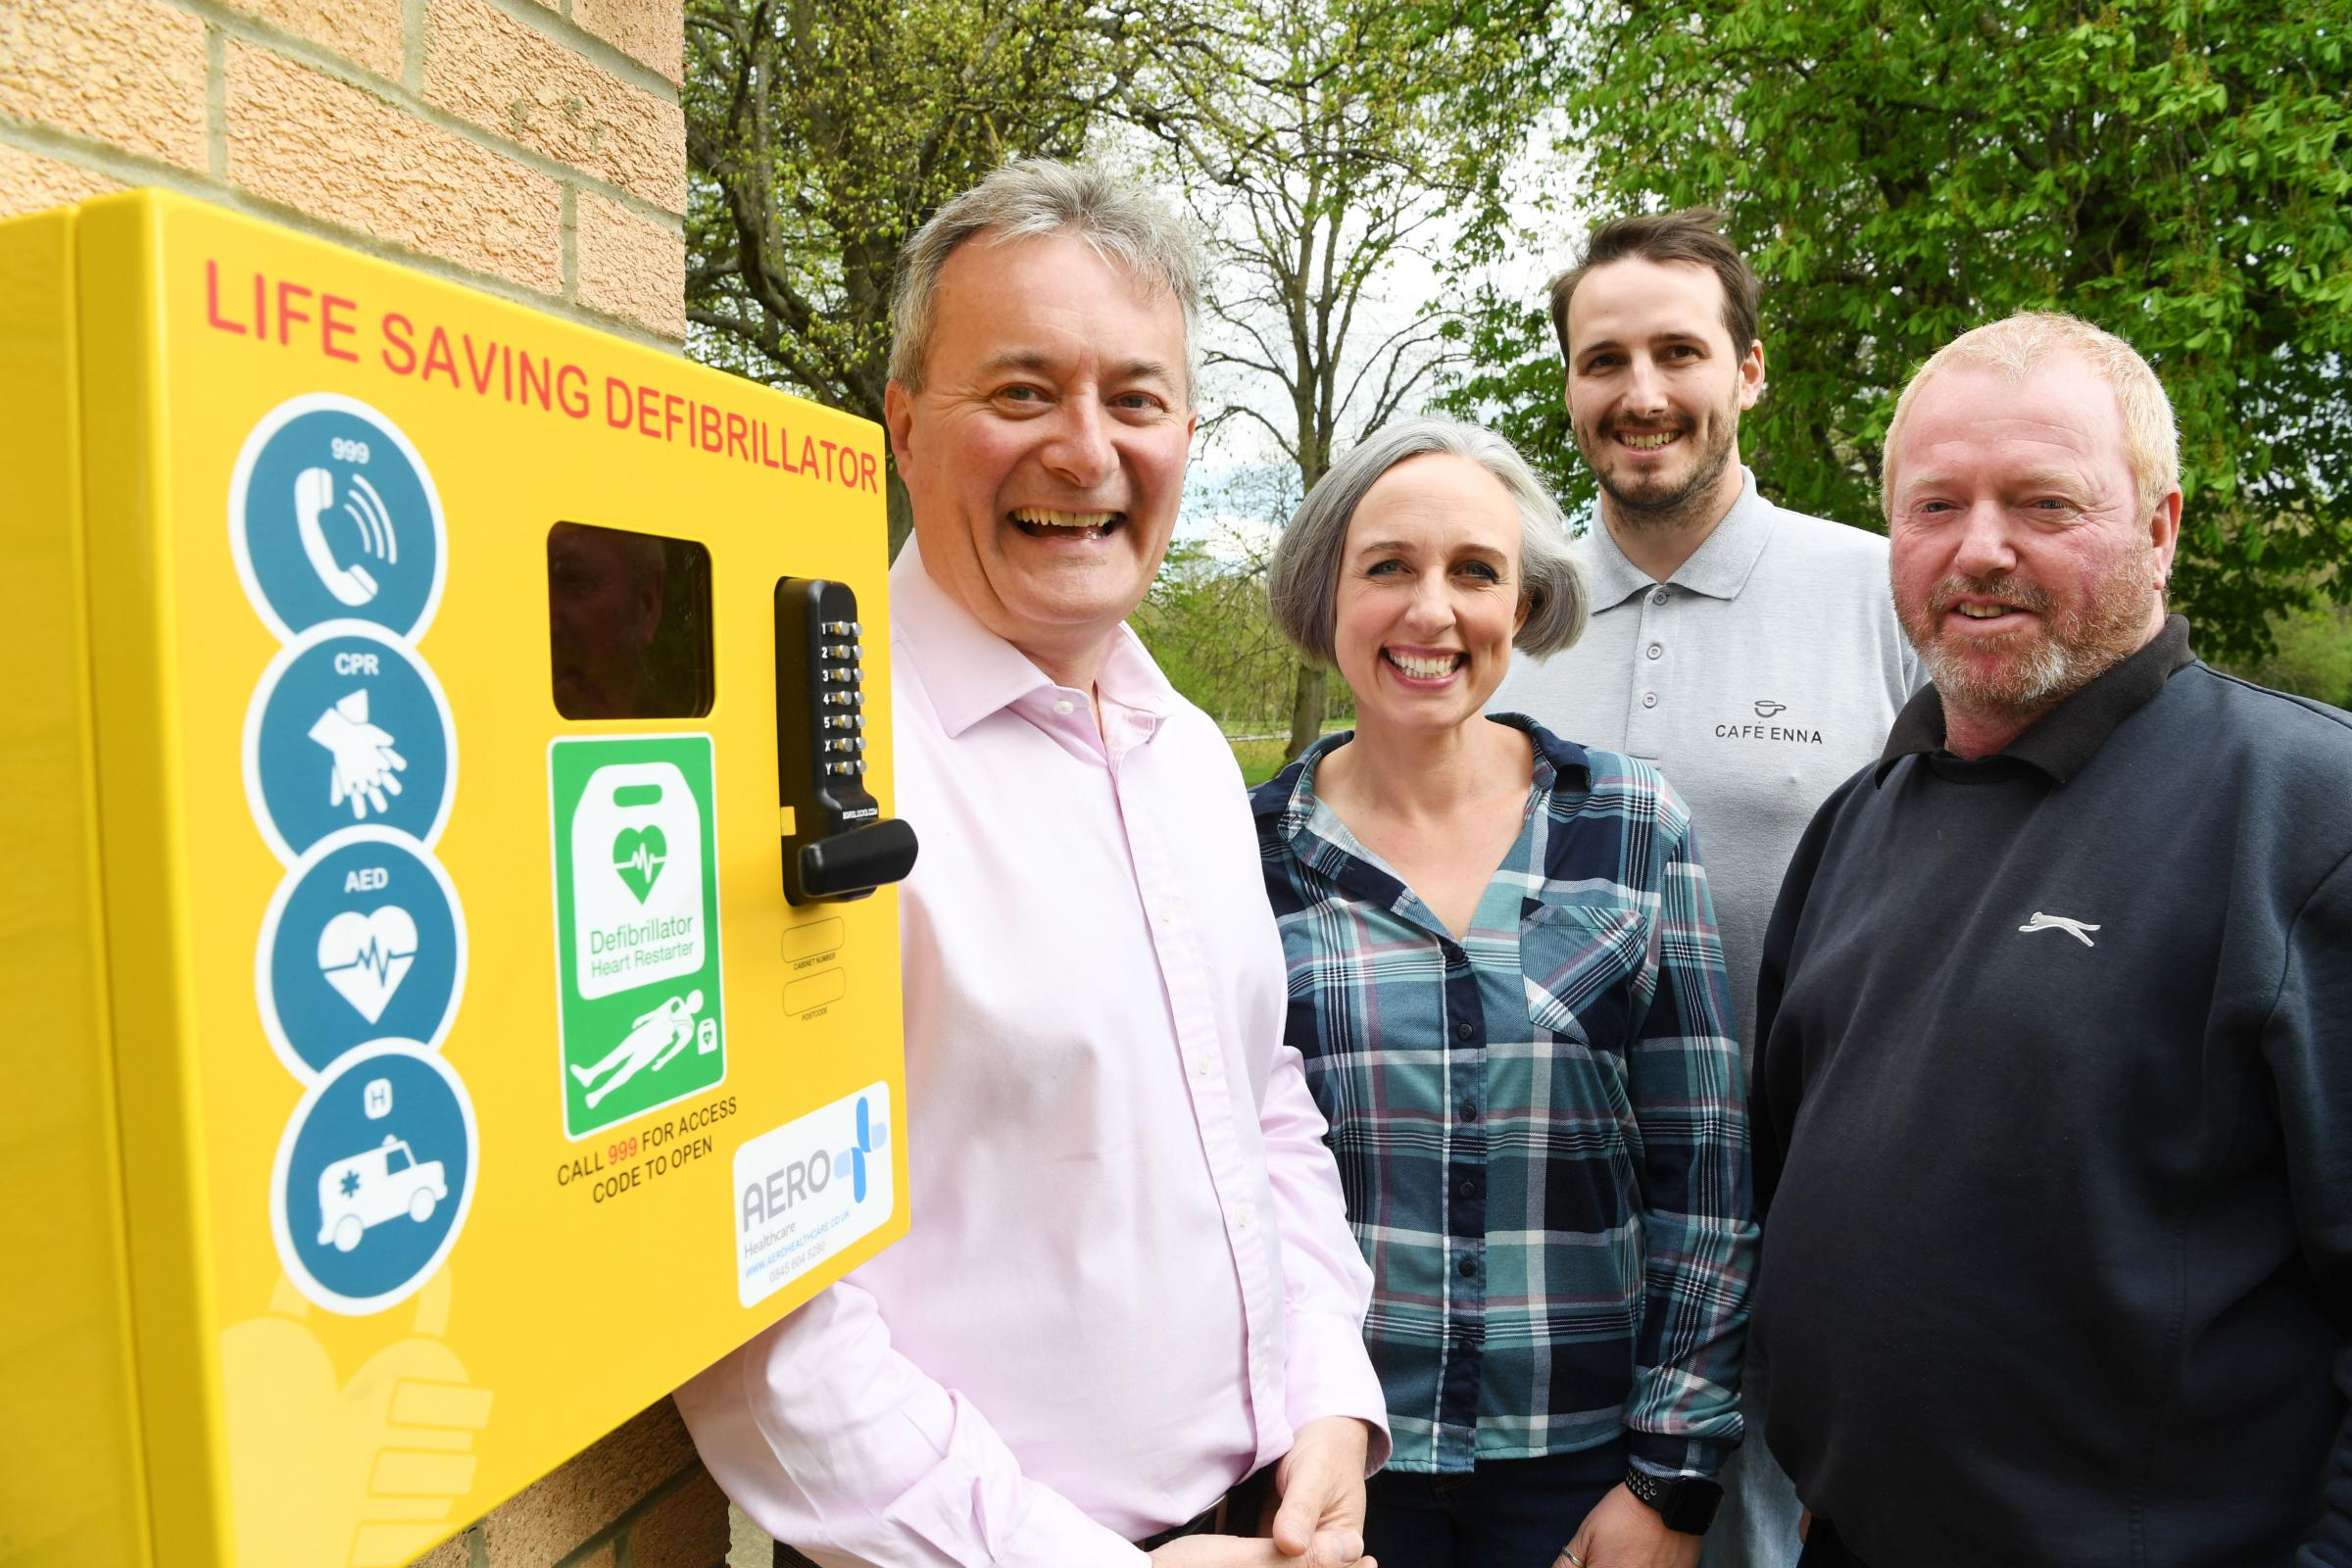 County councillor Derek Kennedy inspects the new defibrillator with Tyne Green parkrun director Claire Knowles, Cafe Enna representative Steve Plemper and Tynedale Golf Club chairman Brendan Murphy.